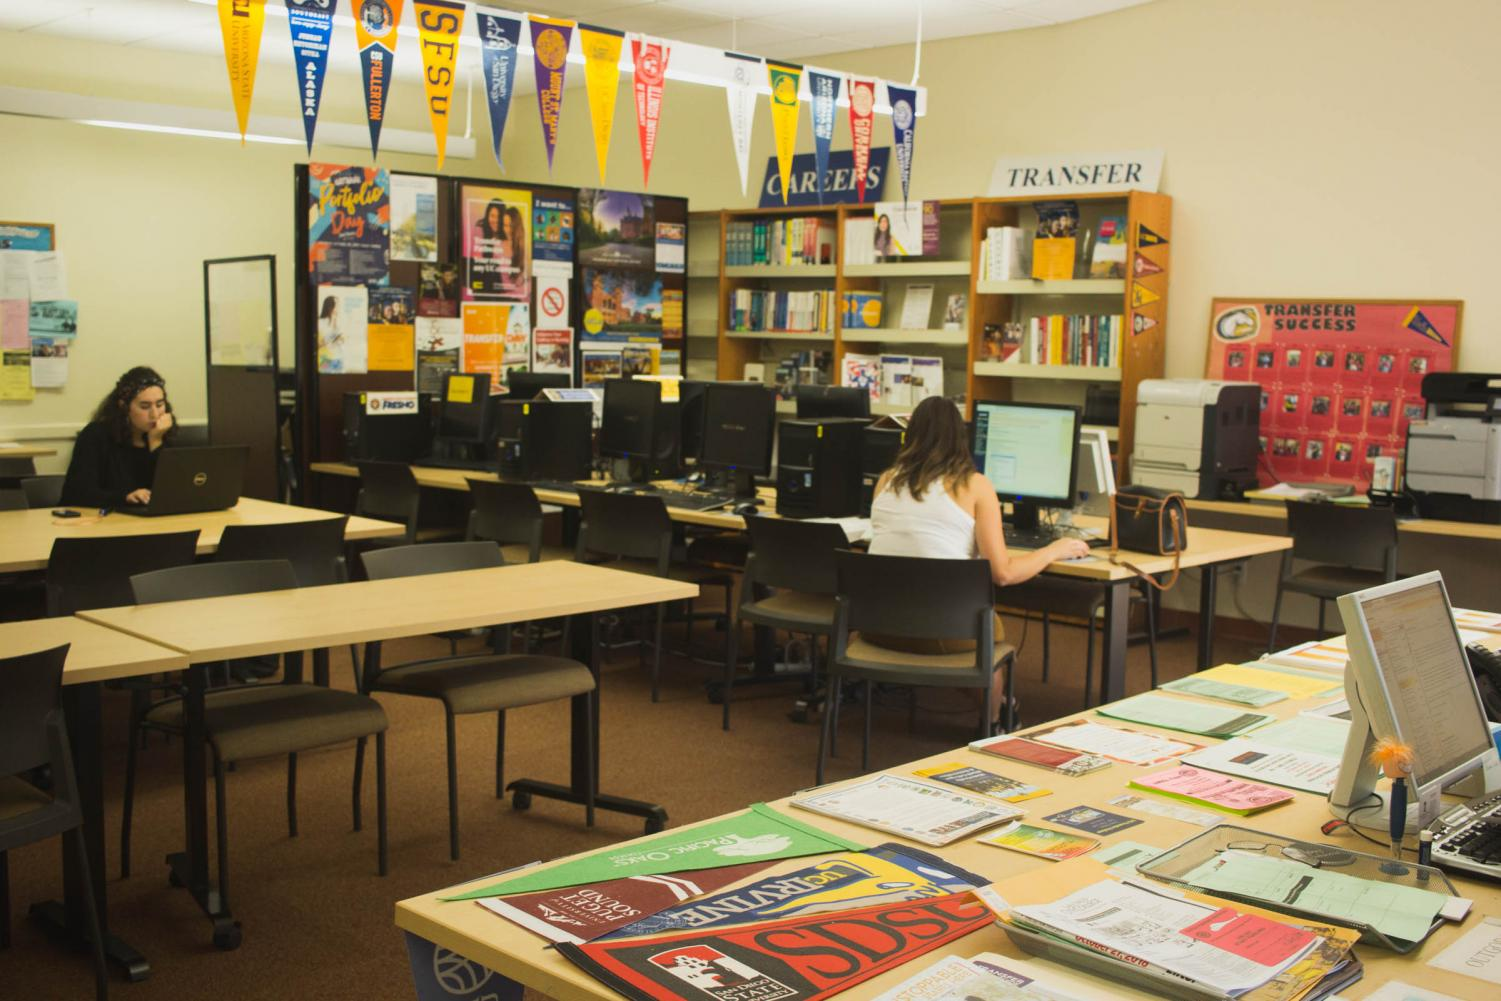 City College students can utilize a variety of services and resources at the Transfer Center, including application assistance. Photo by Nadia Mishkin, City Times.